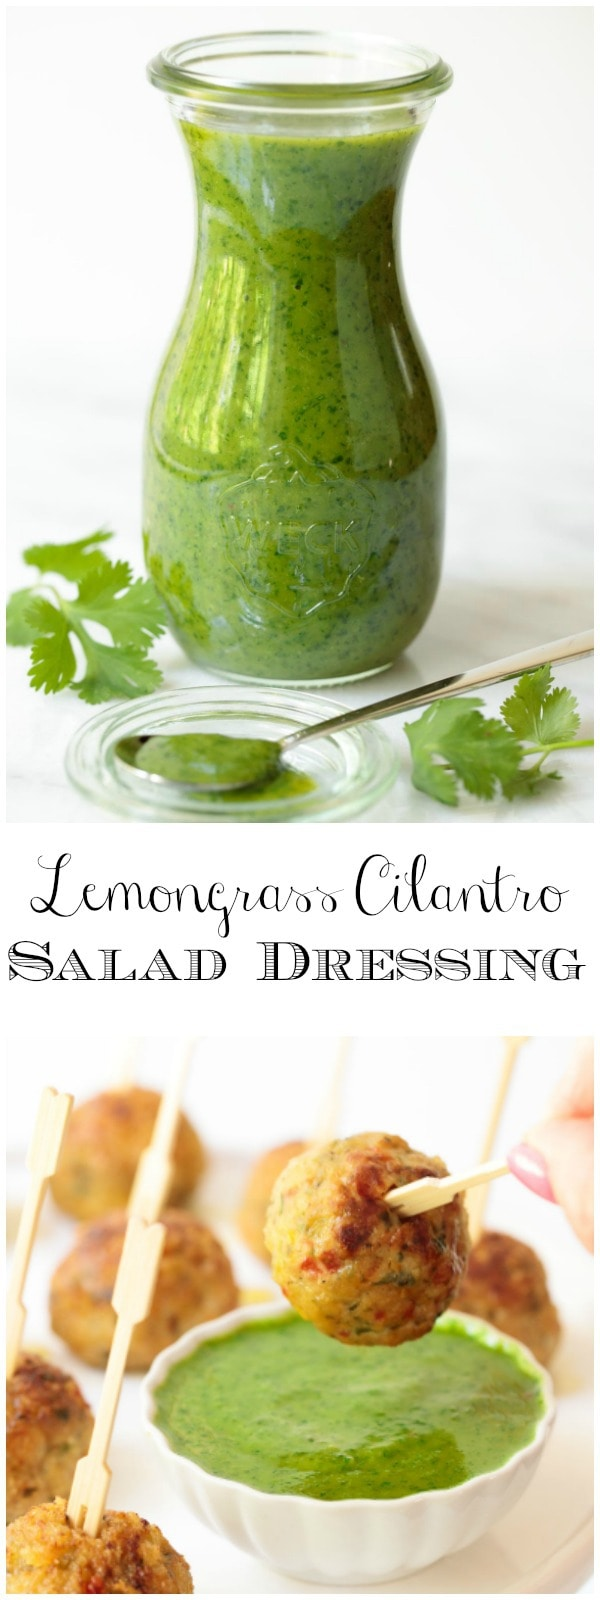 Fresh and vibrant this Lemongrass Cilantro Salad Dressing is delicious on salads, grilled chicken, shrimp, salmon, pork and so much else! #saladdressing, #cilantrodressing, #cilantrosauce, #saladlove, #freshanddelicious, #easysaladdressing,